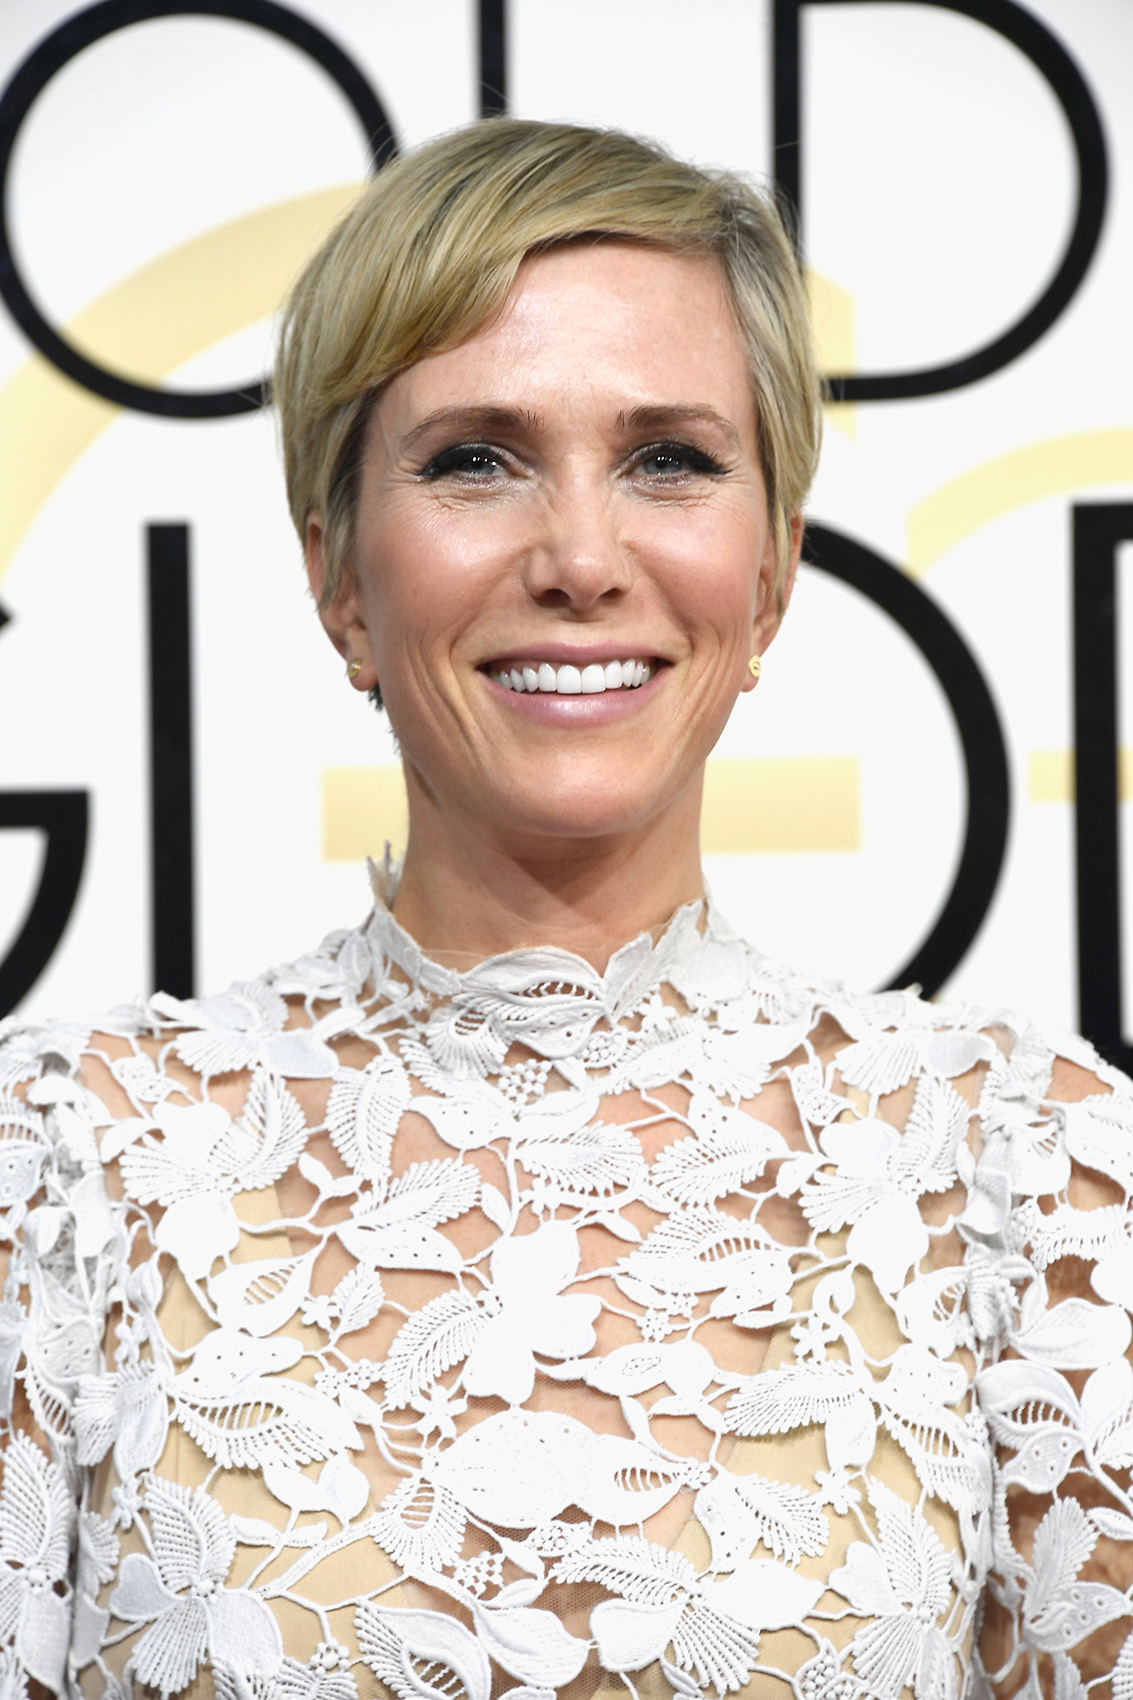 Kristen Wiig at the 74th Annual Golden Globe Awards